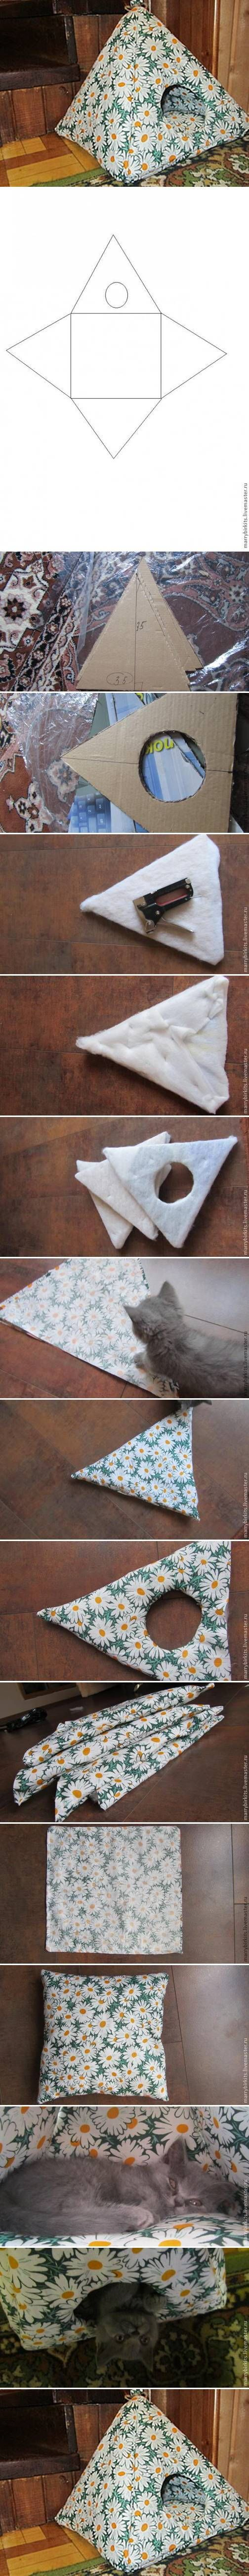 DIY House for Cat DIY Projects